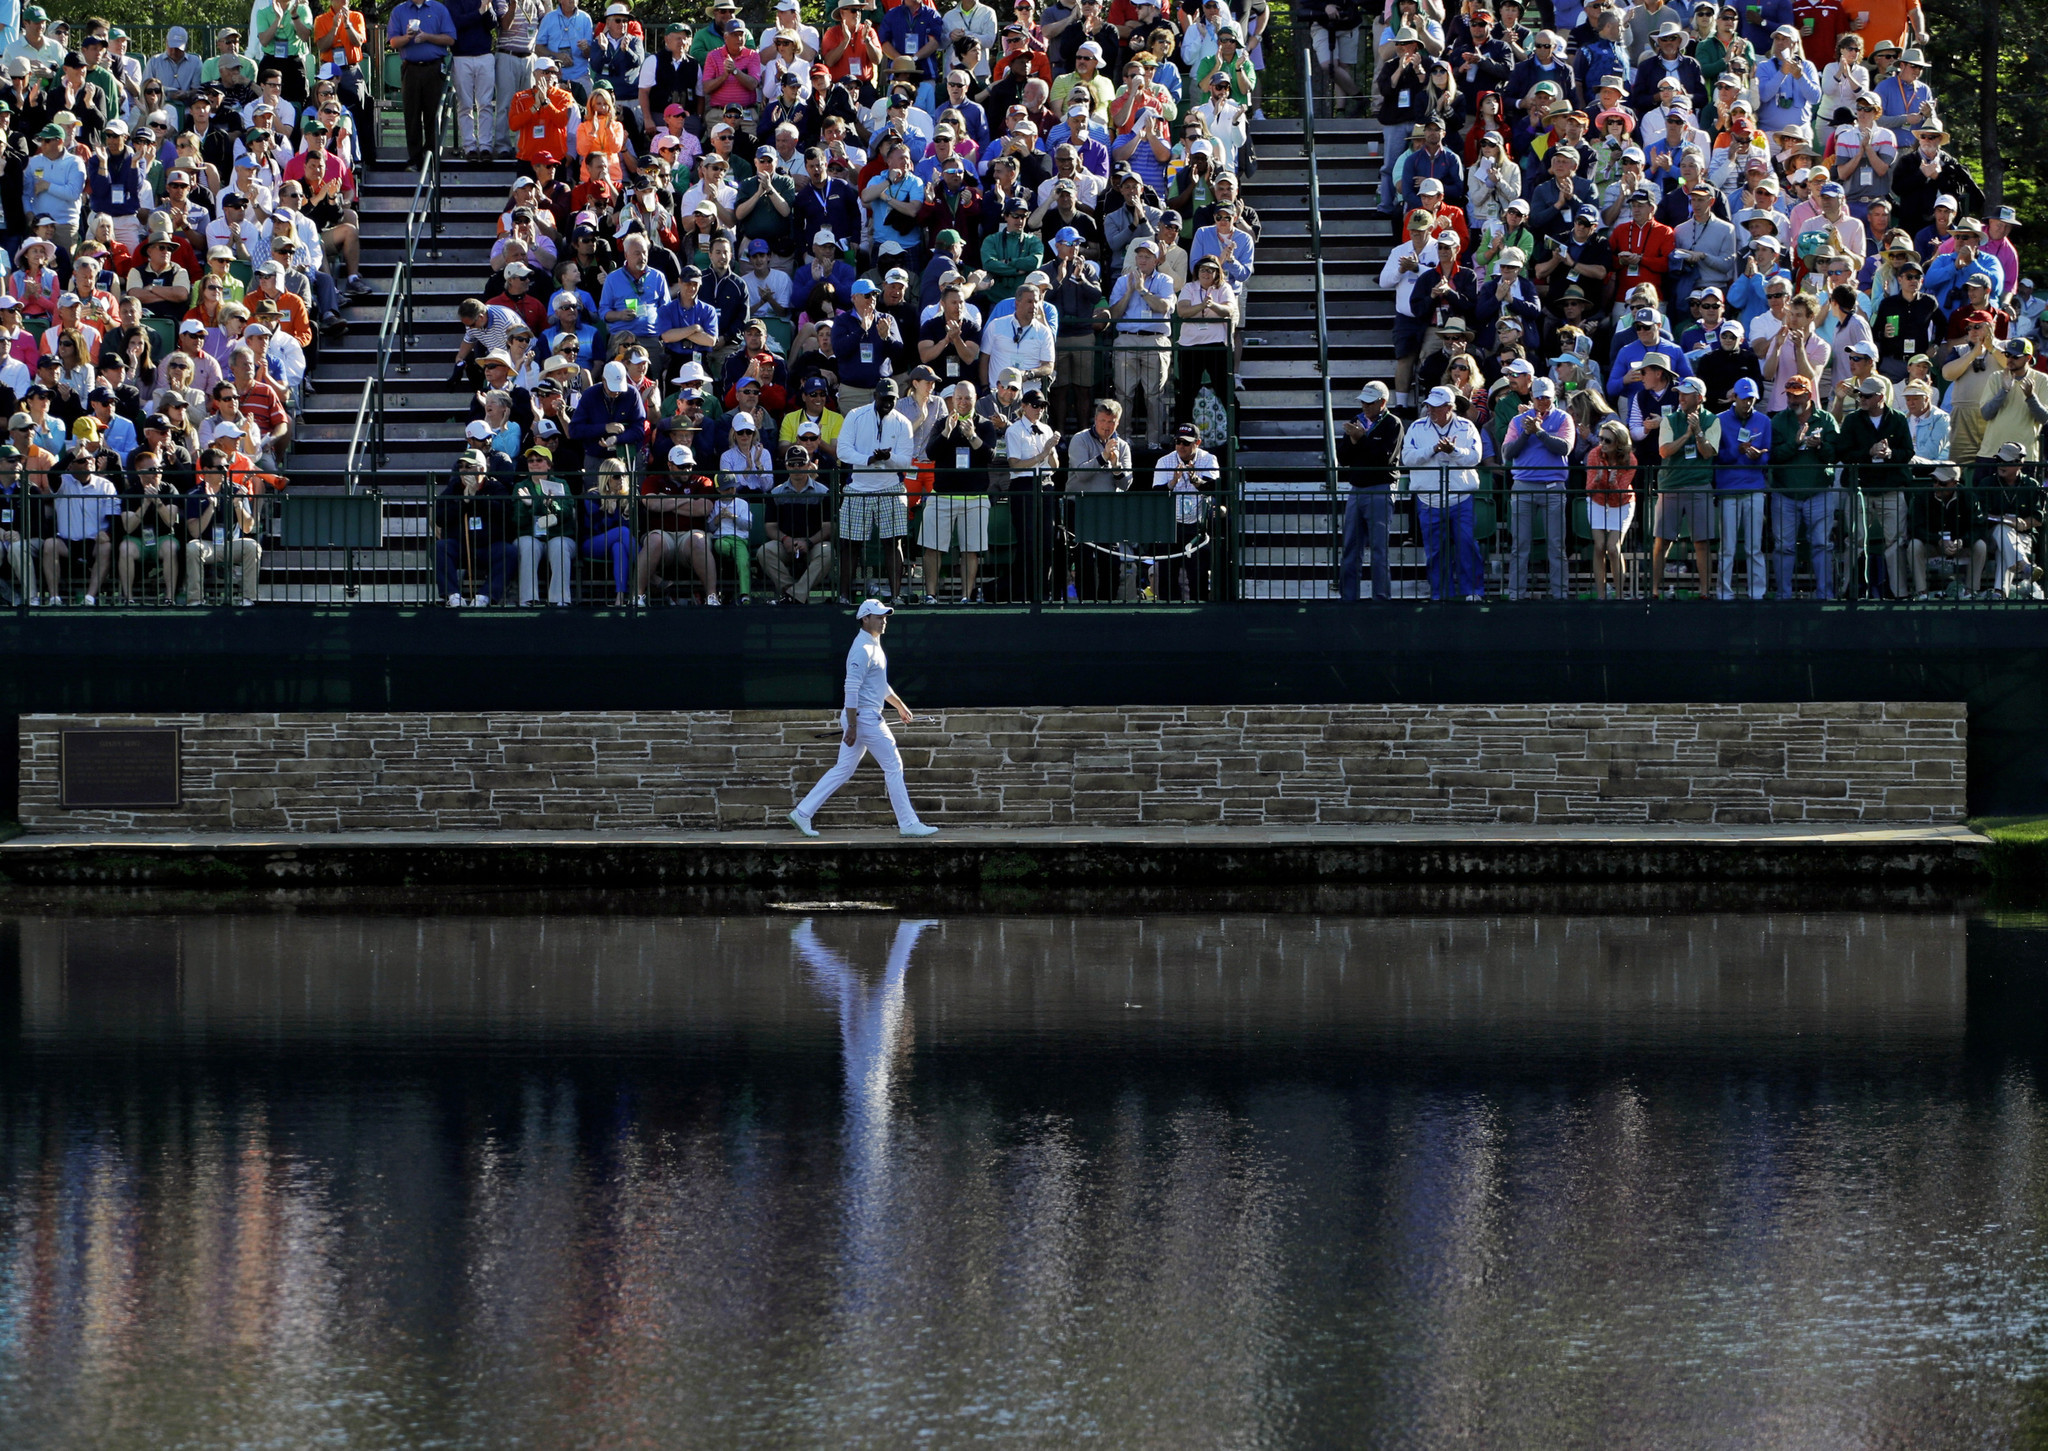 Water fountains masters - Masters Notes After A Great Day Amateur Bryson Dechambeau Falters On The Last Hole La Times